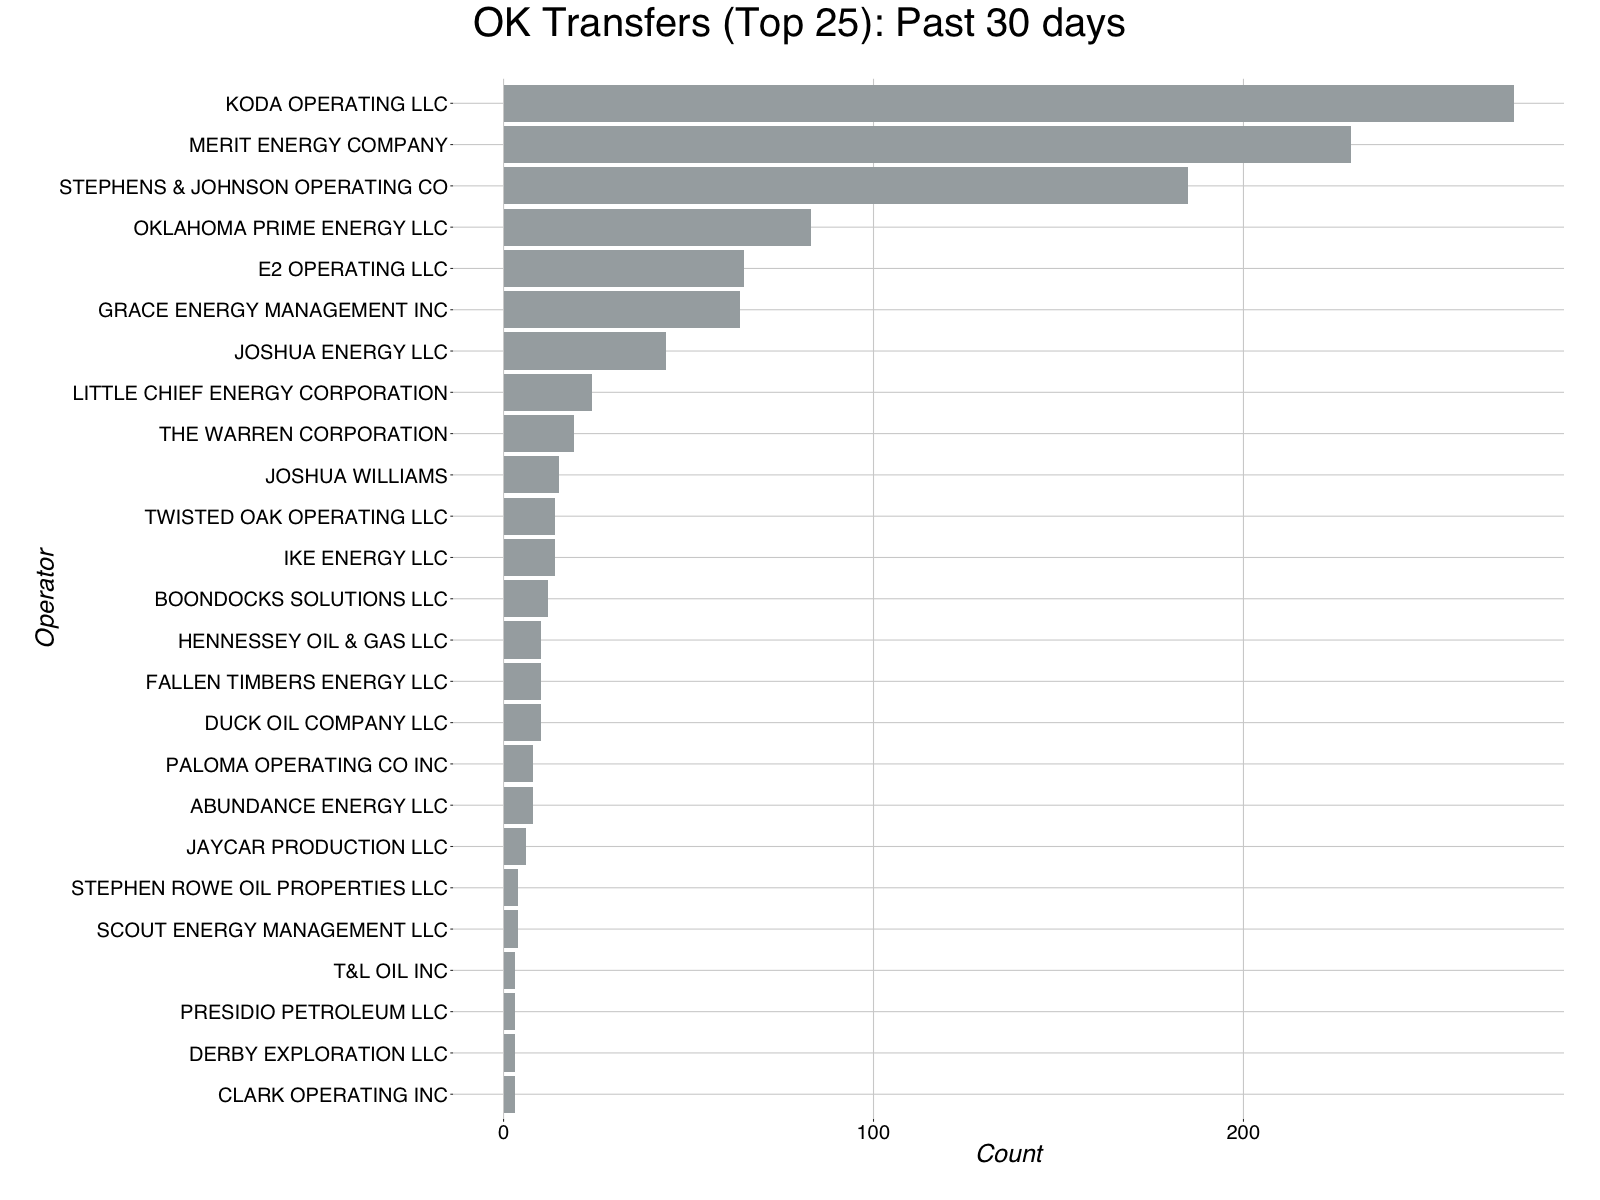 report_bar_chart_transfers_ok_email